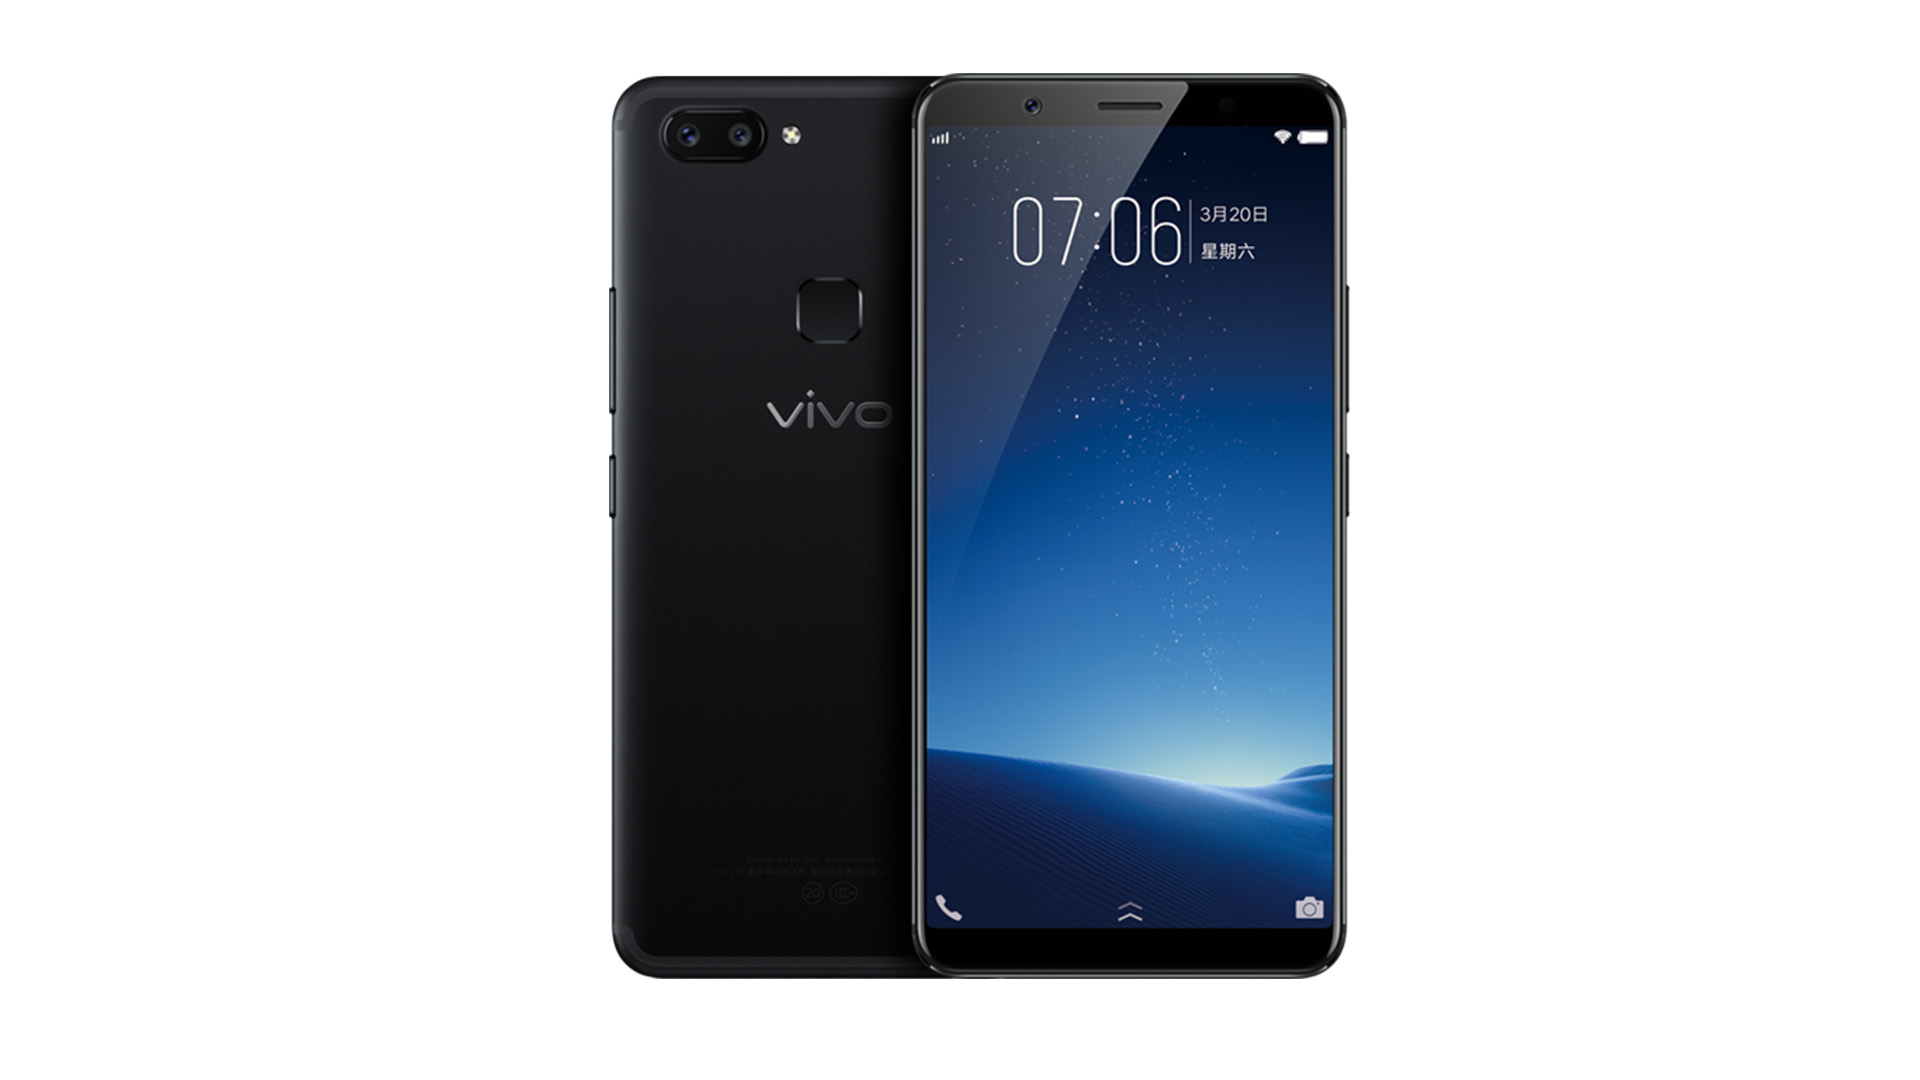 https://jamonline.ph/wp-content/uploads/2017/09/Vivo-X20-Plus.jpg